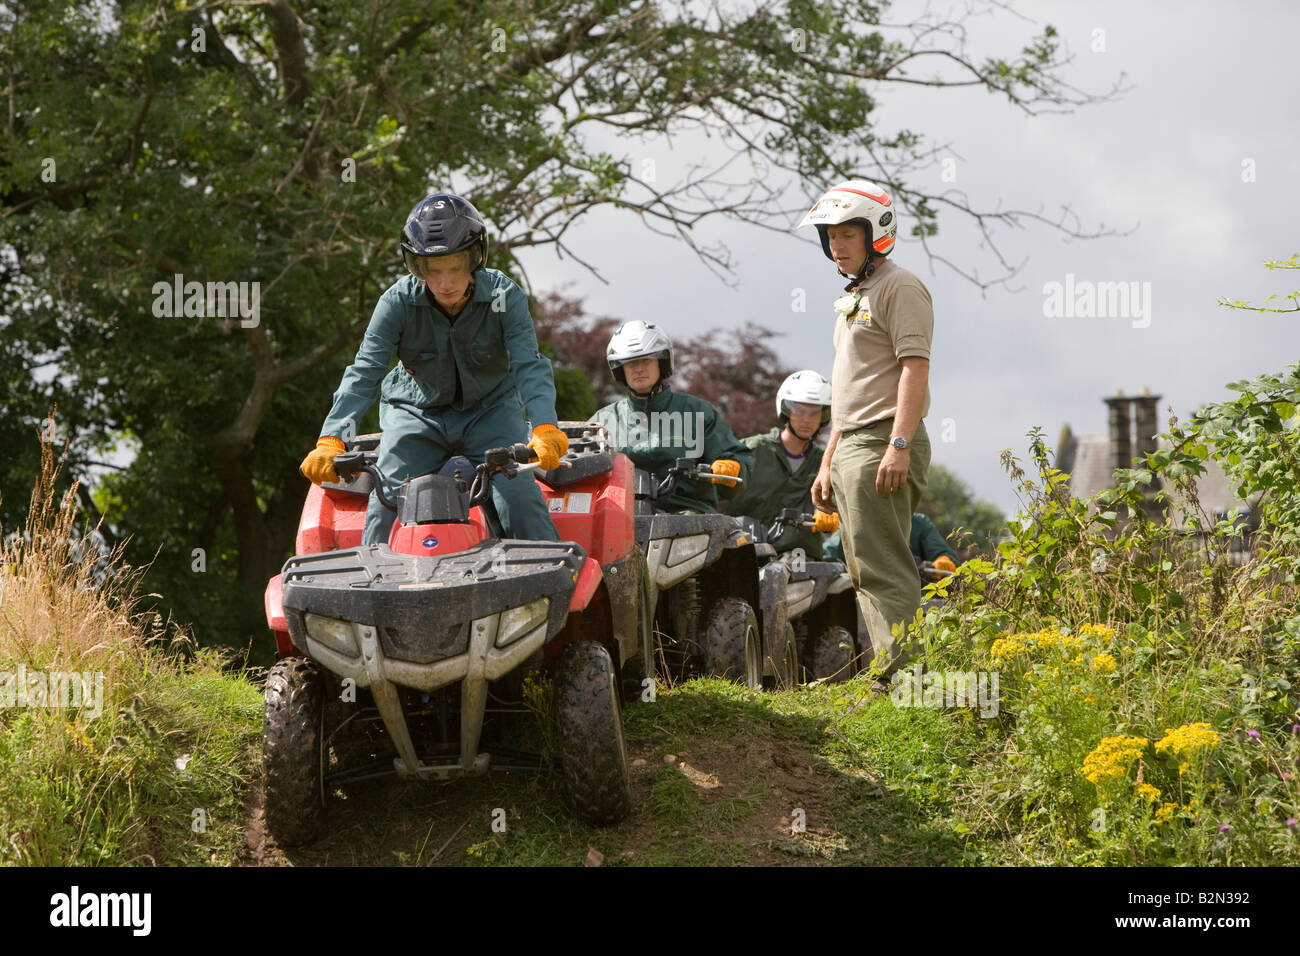 Quad Biking Tuition North Yorkshire by Yorkshire 4x4 - Stock Image